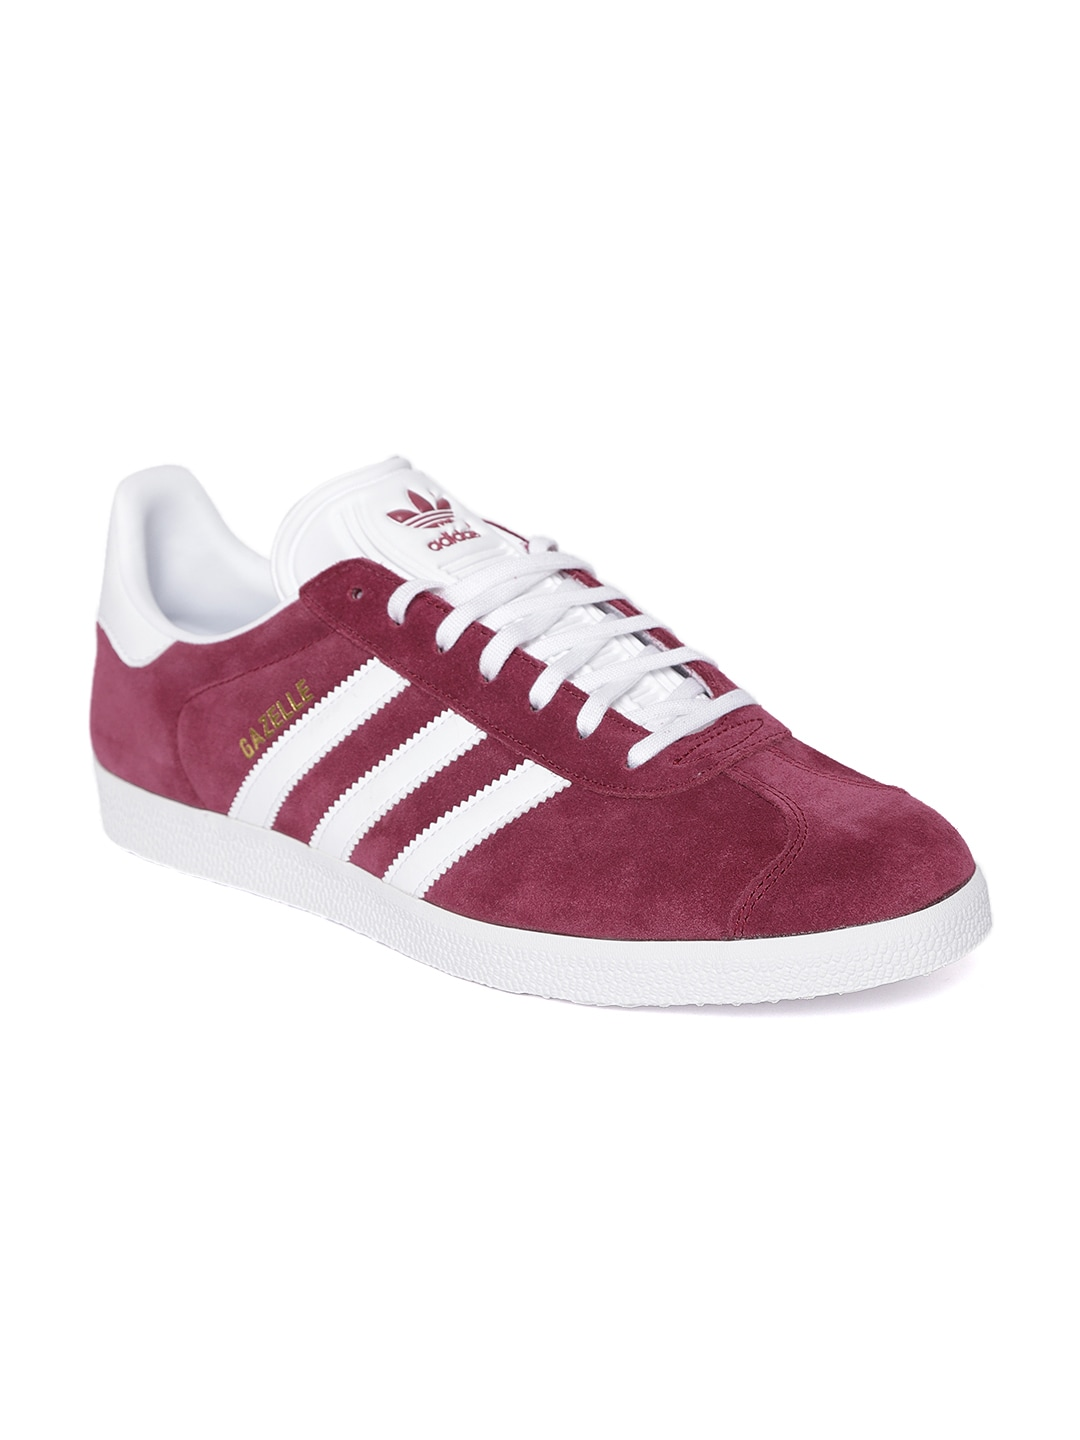 63d1e15a456 Adidas Gazelle - Buy Adidas Gazelle sneakers online in India